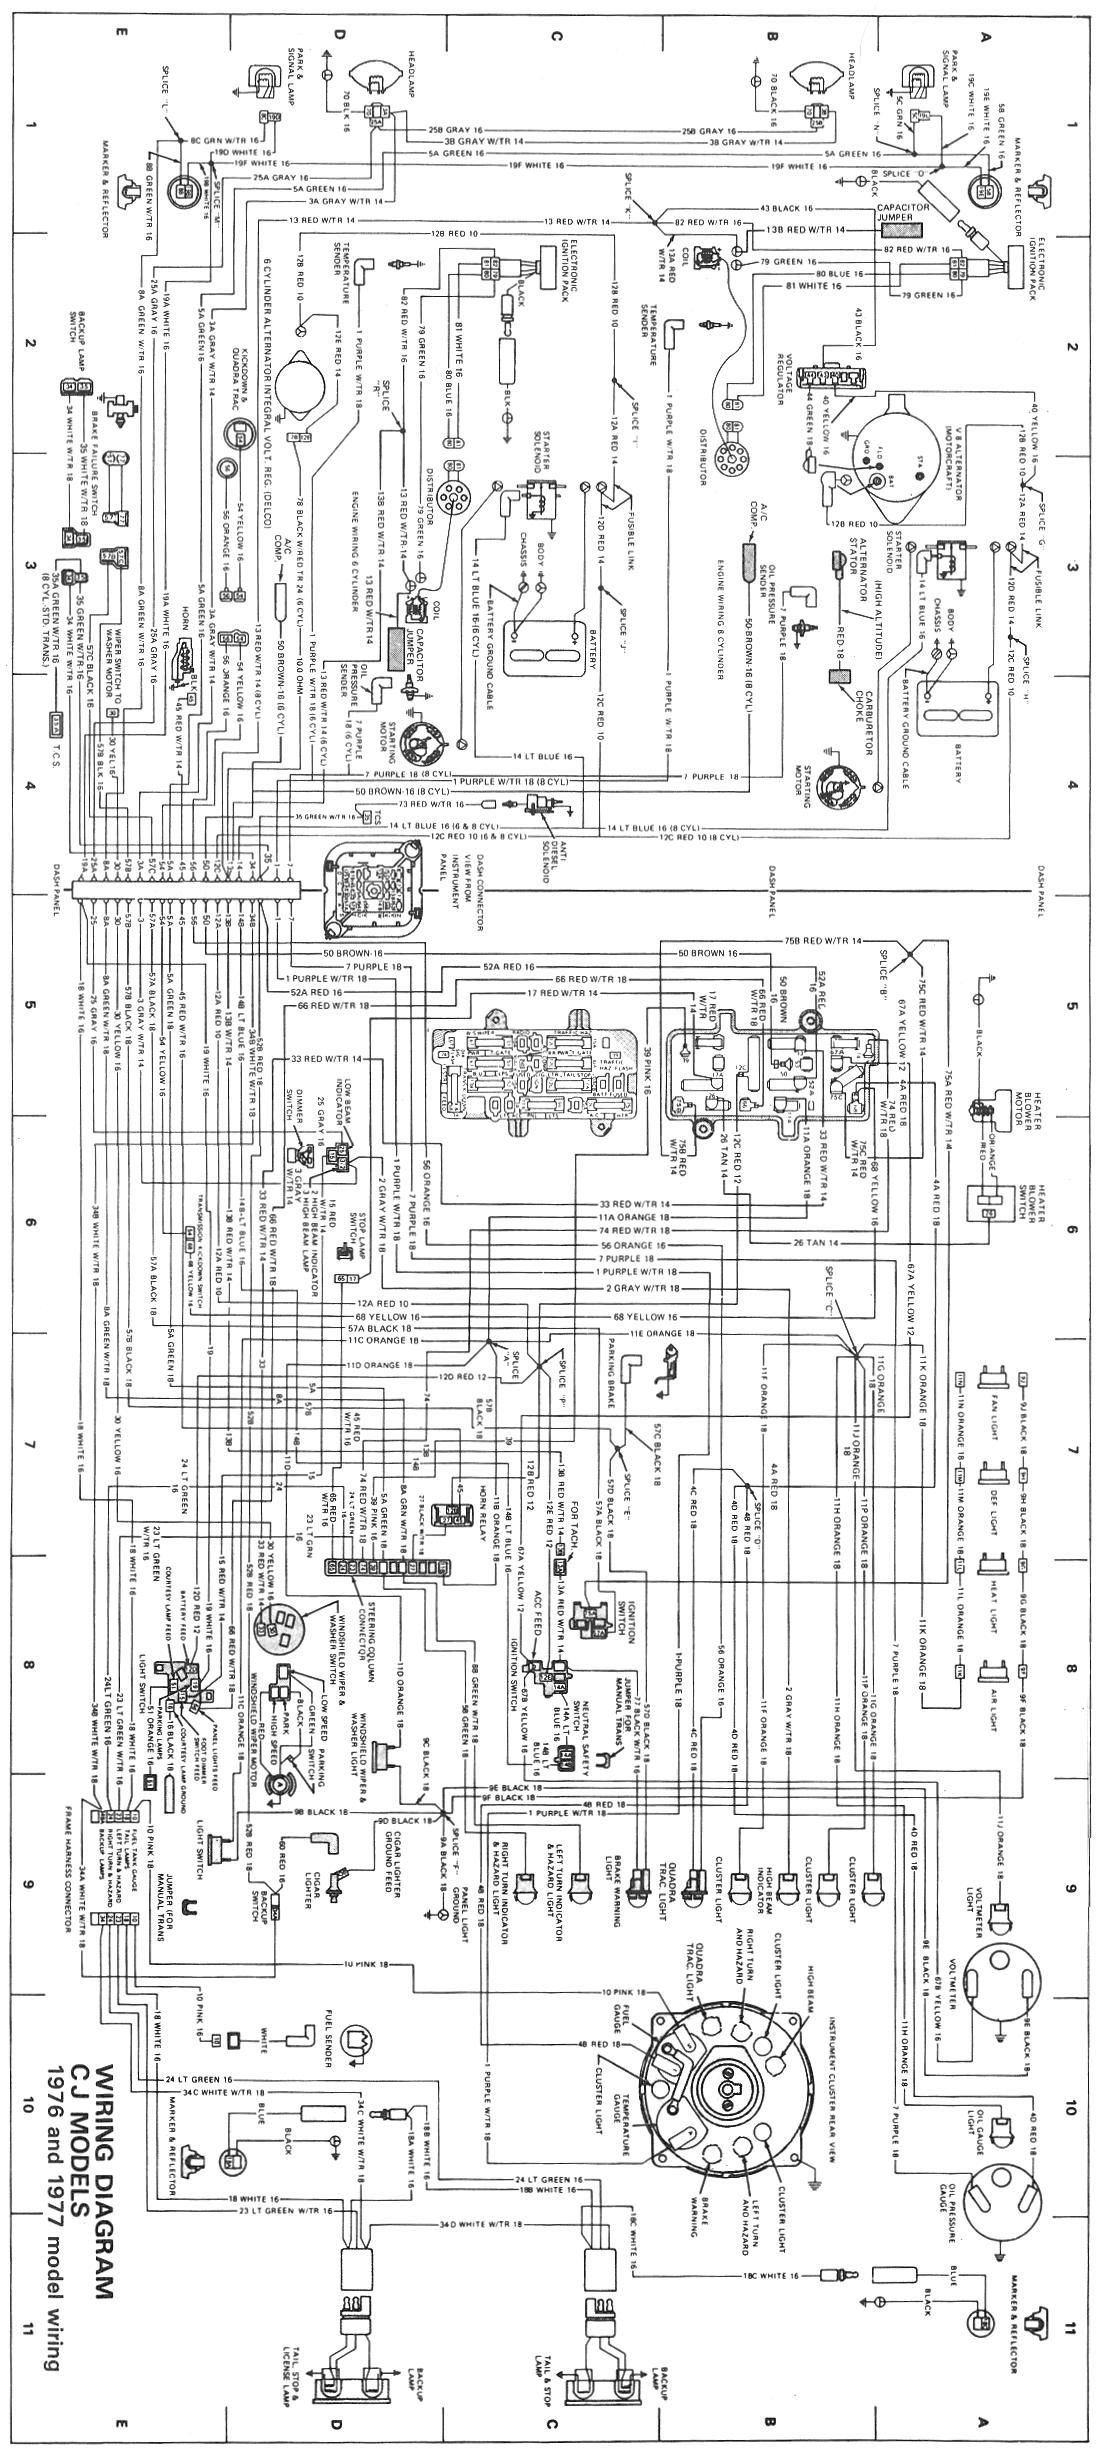 8d25ded6e3673519e155875e09844e5e cj wiring diagram 1976 1977 jpg 1,100�2,459 pixels 1976 jeep cj5 Painless Wiring Harness Diagram at nearapp.co